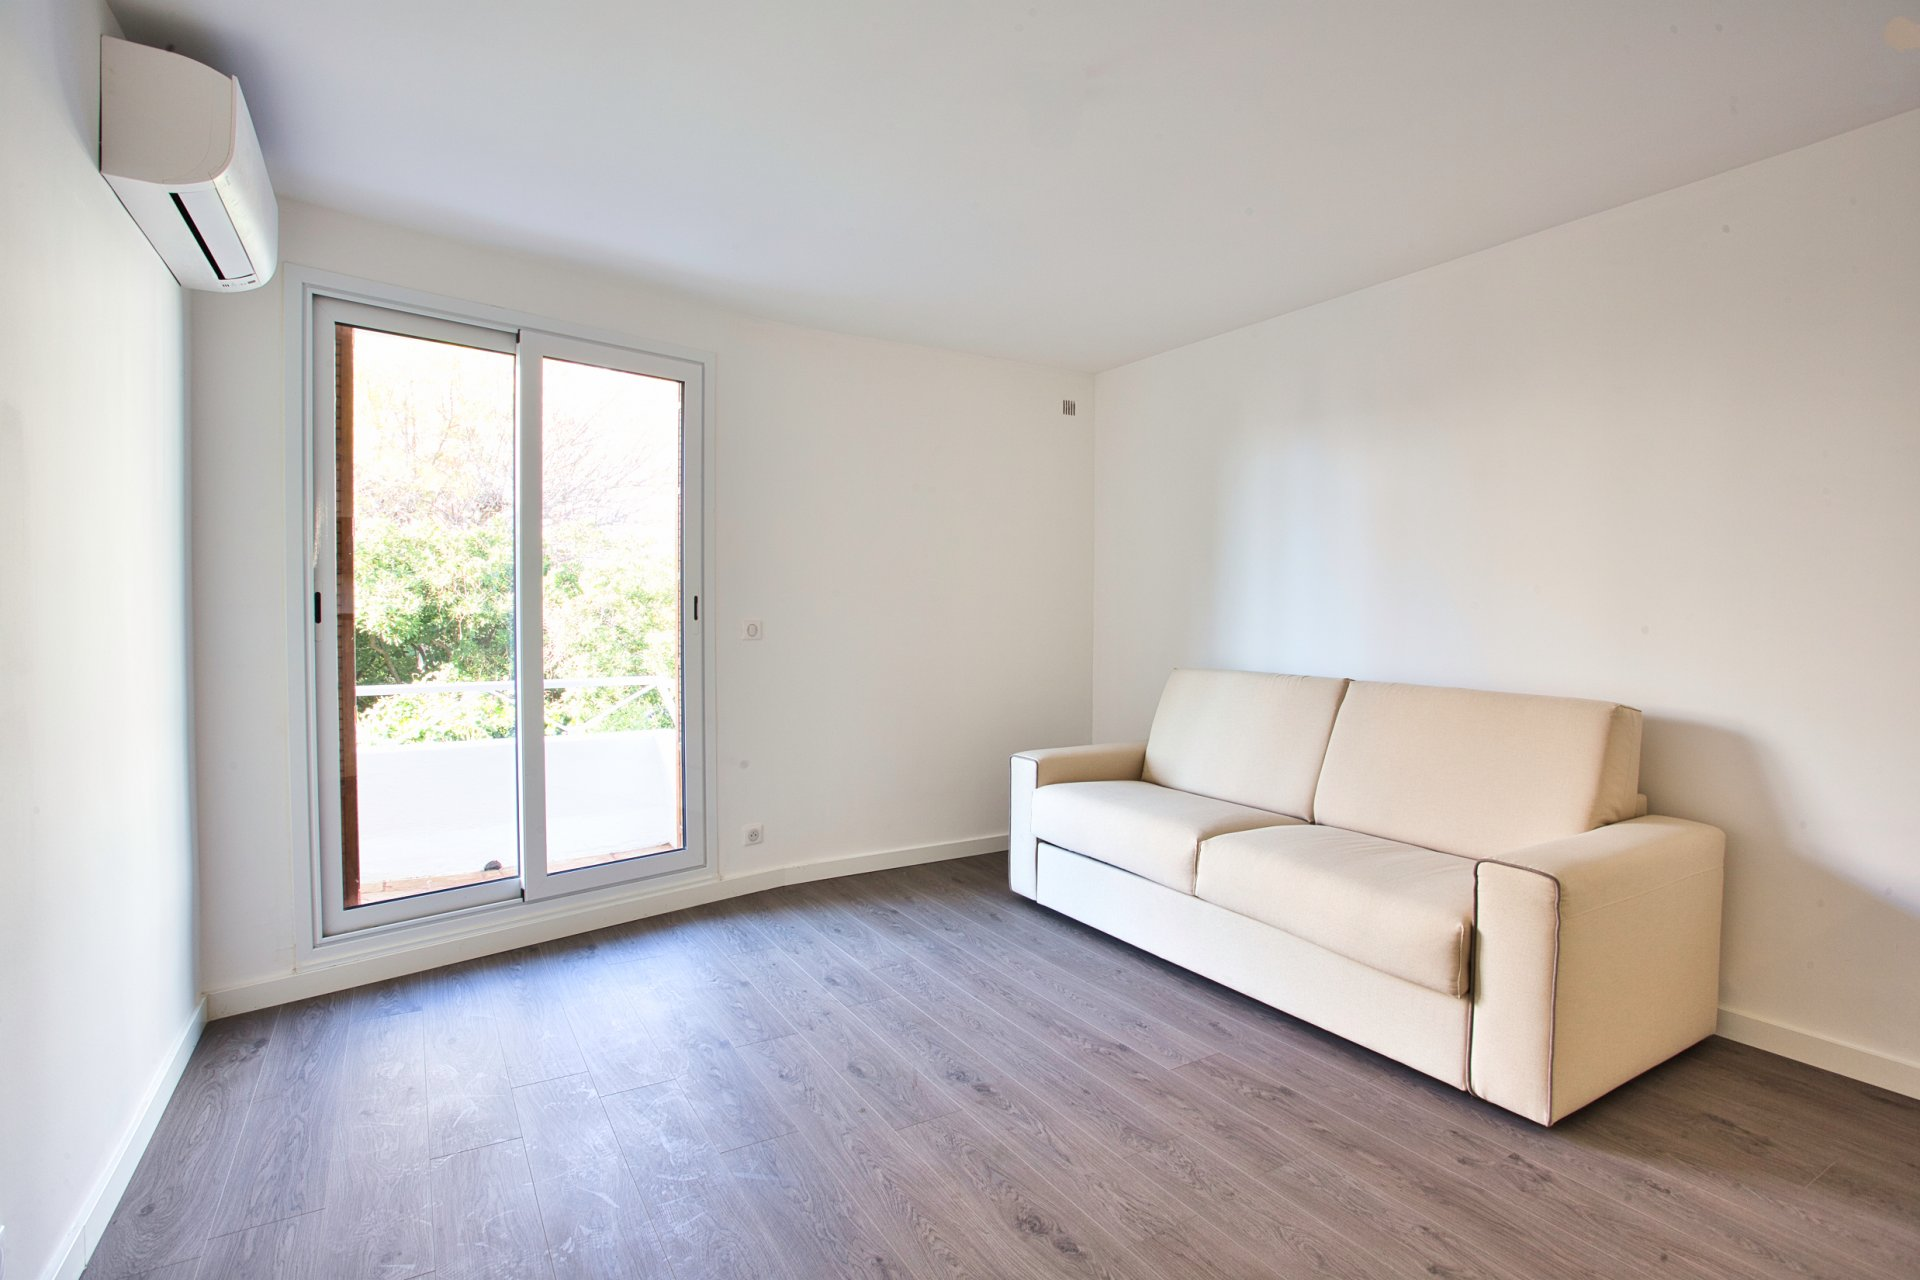 In Cannes, 2P, new, close to the beach, quiet, terrace